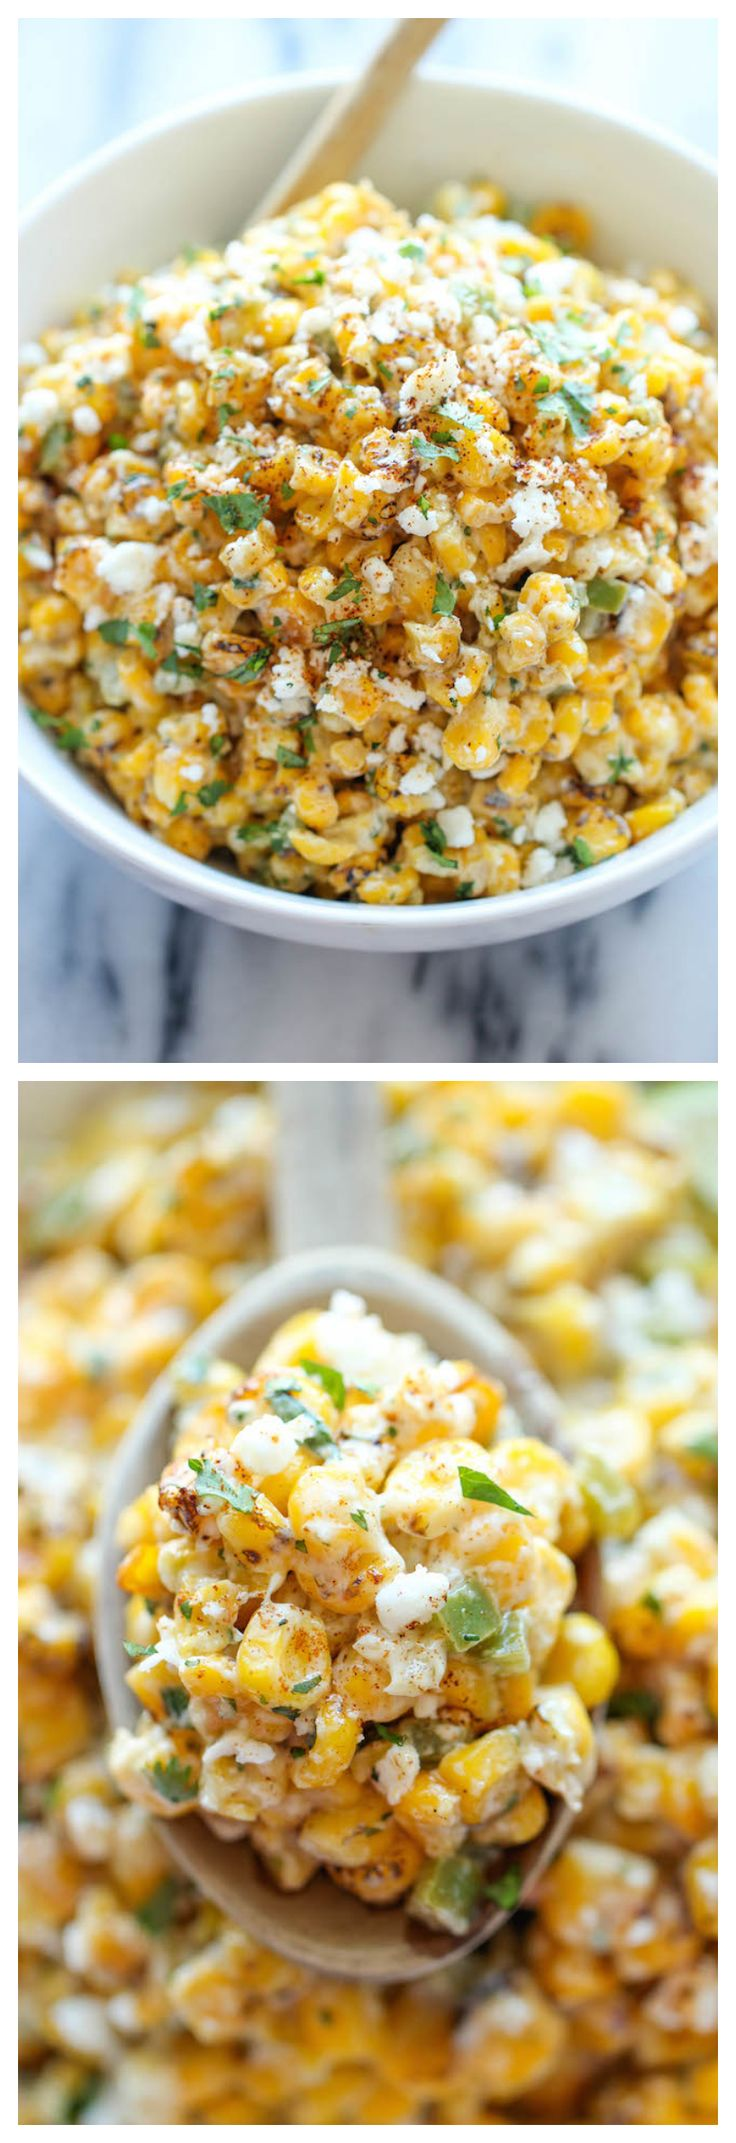 outlet sale in paris Party Appetizer Recipe   Mexican Corn Dip   The traditional Mexican street corn is turned into the best dip ever  It  39 s so good  you won  39 t even need the chips here